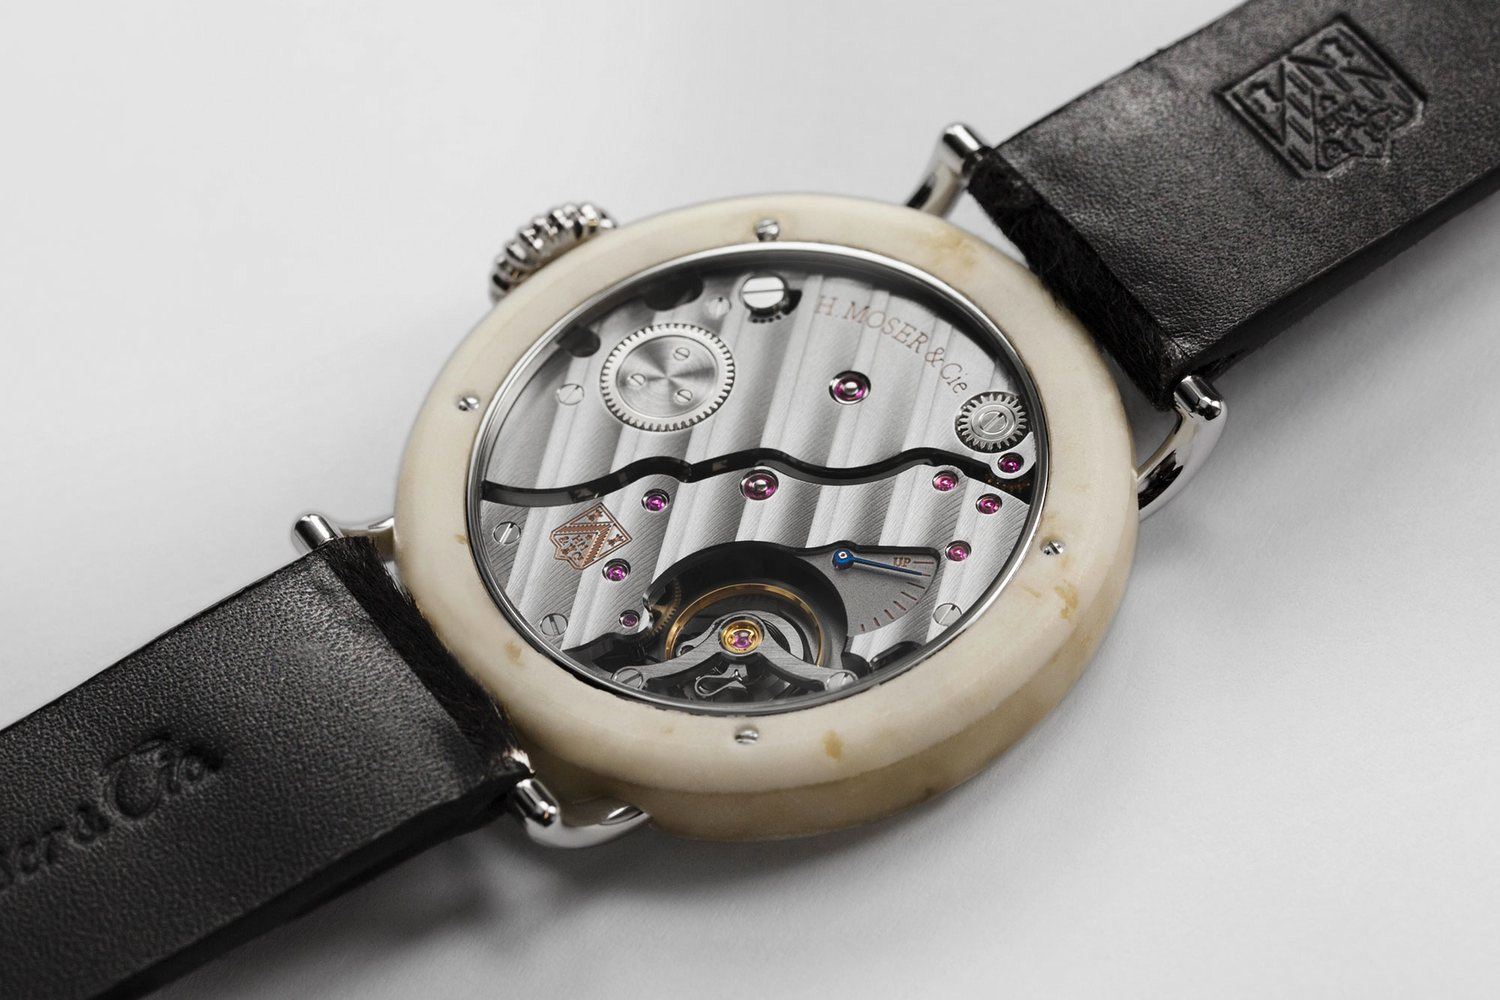 The case of the Swiss Mad Watch is actual Swiss cheese combined with resin to create a special polymer.